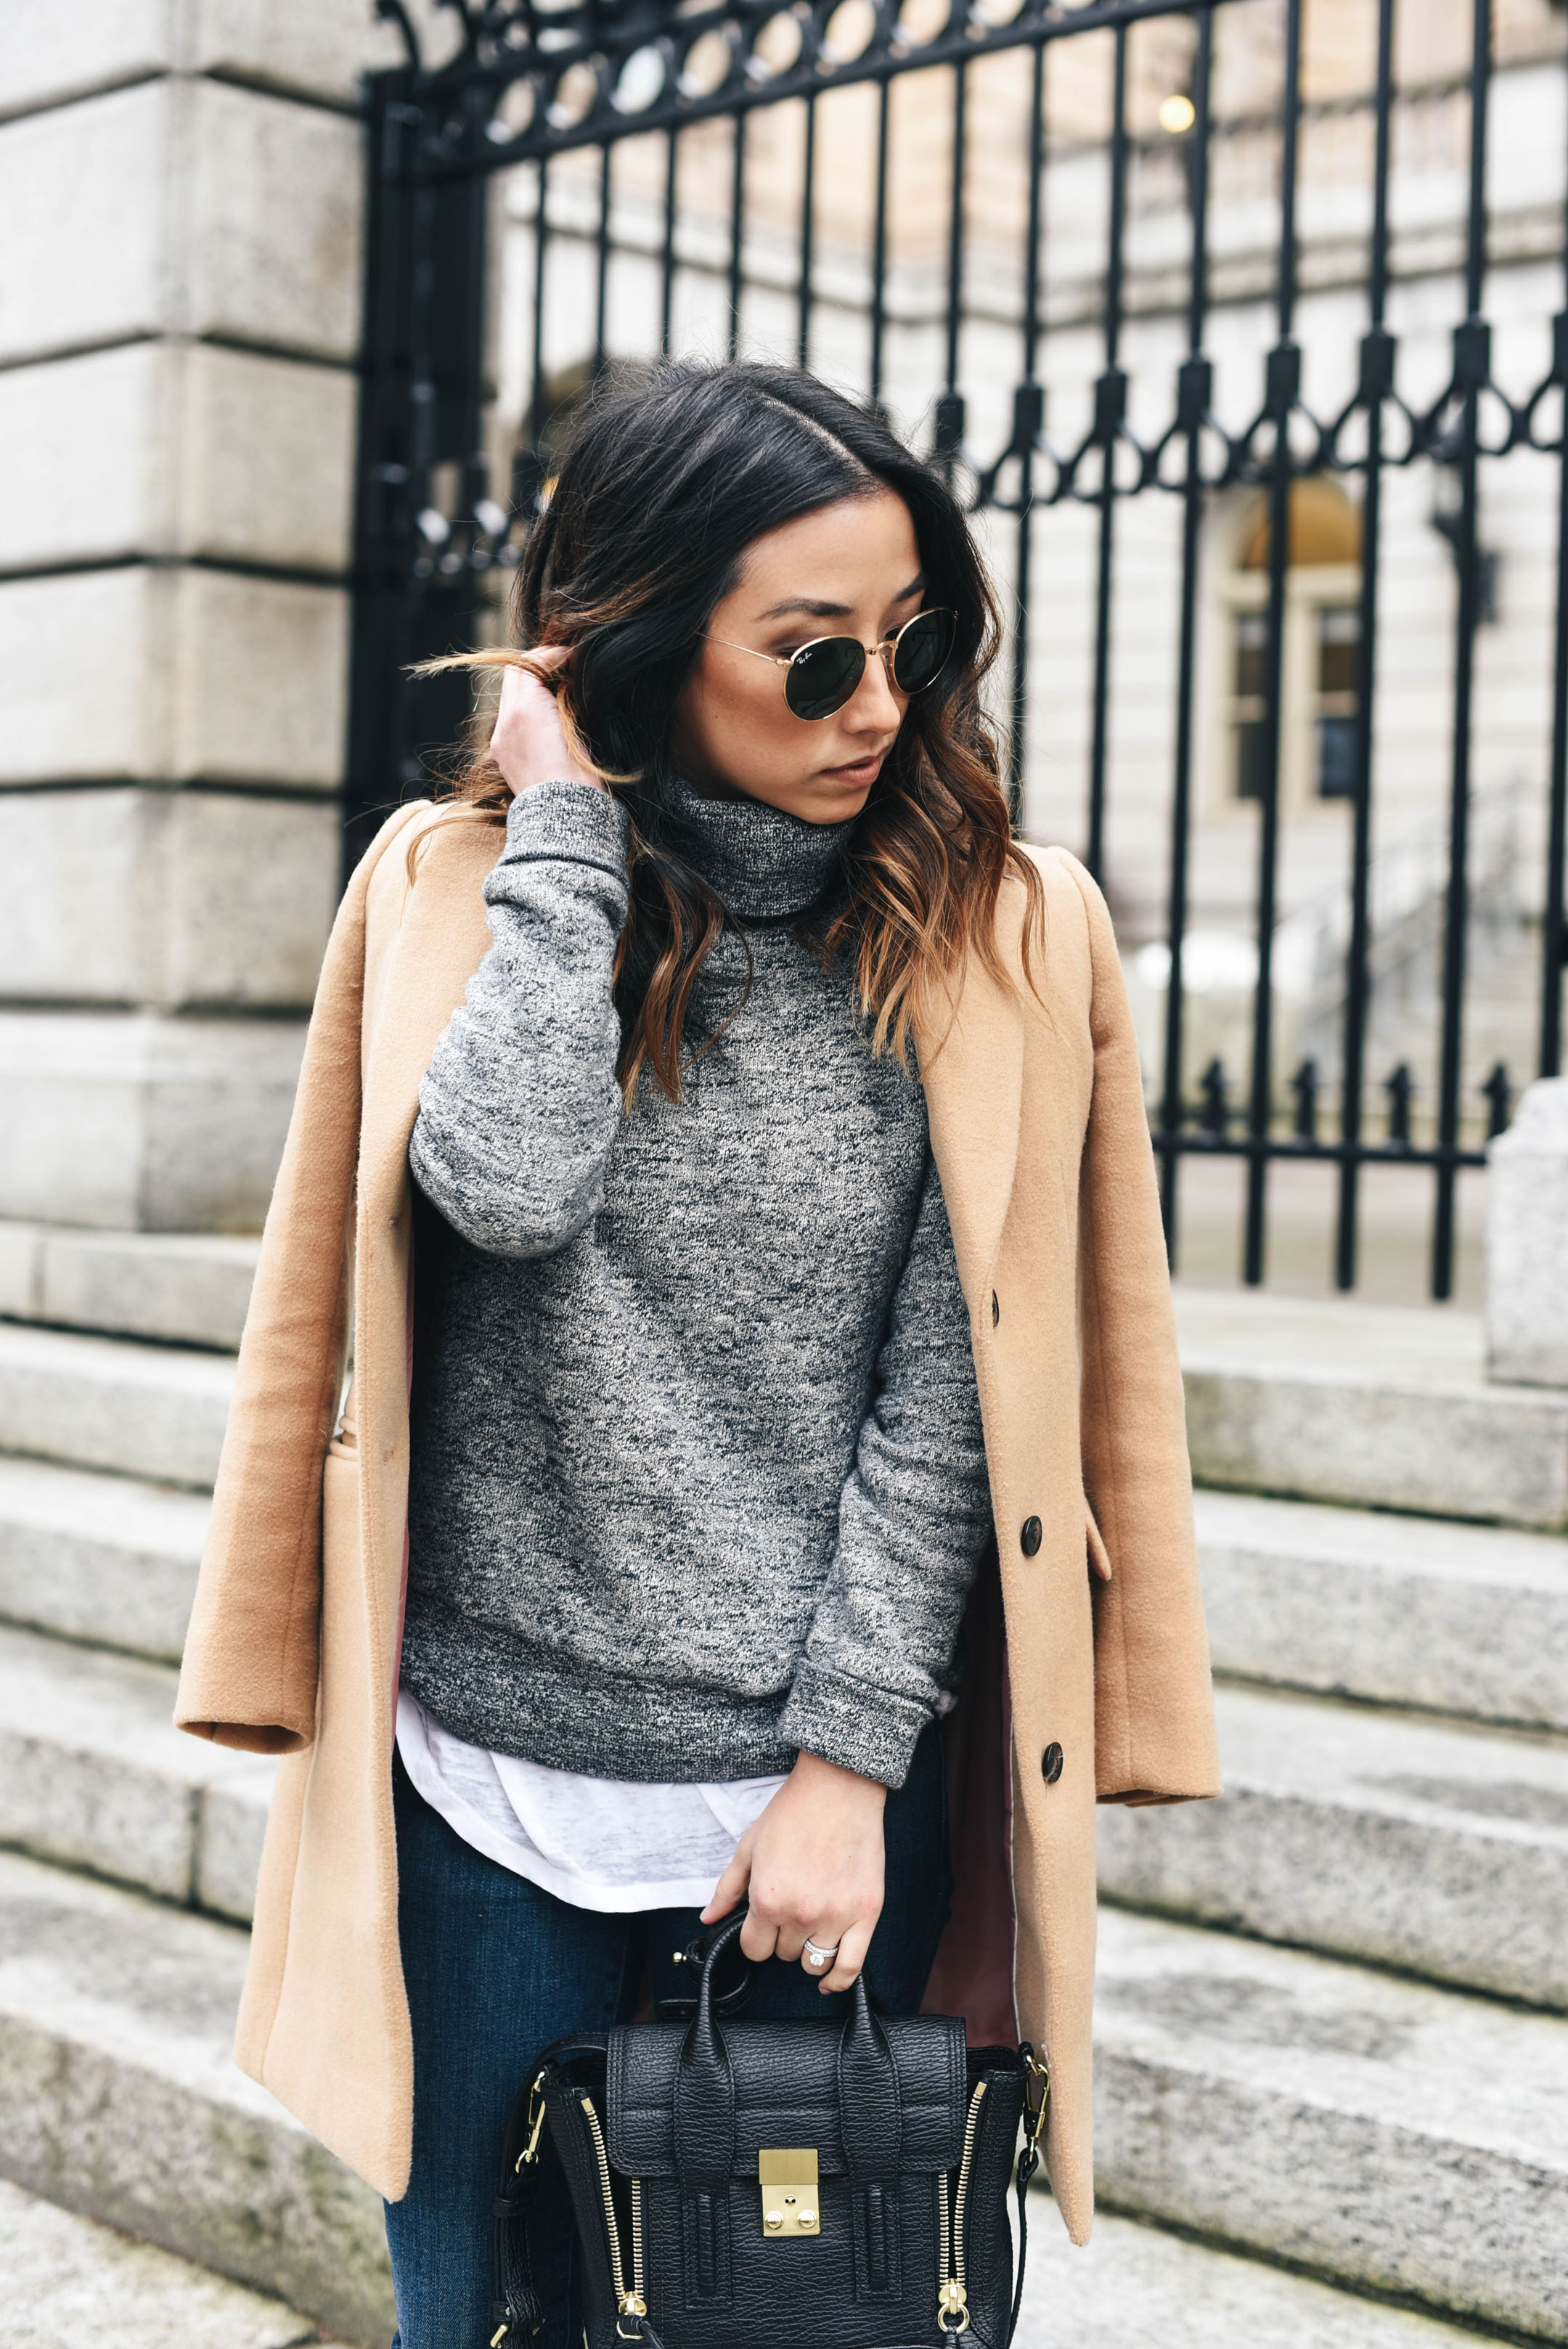 J.Crew Turtleneck sweatshirt